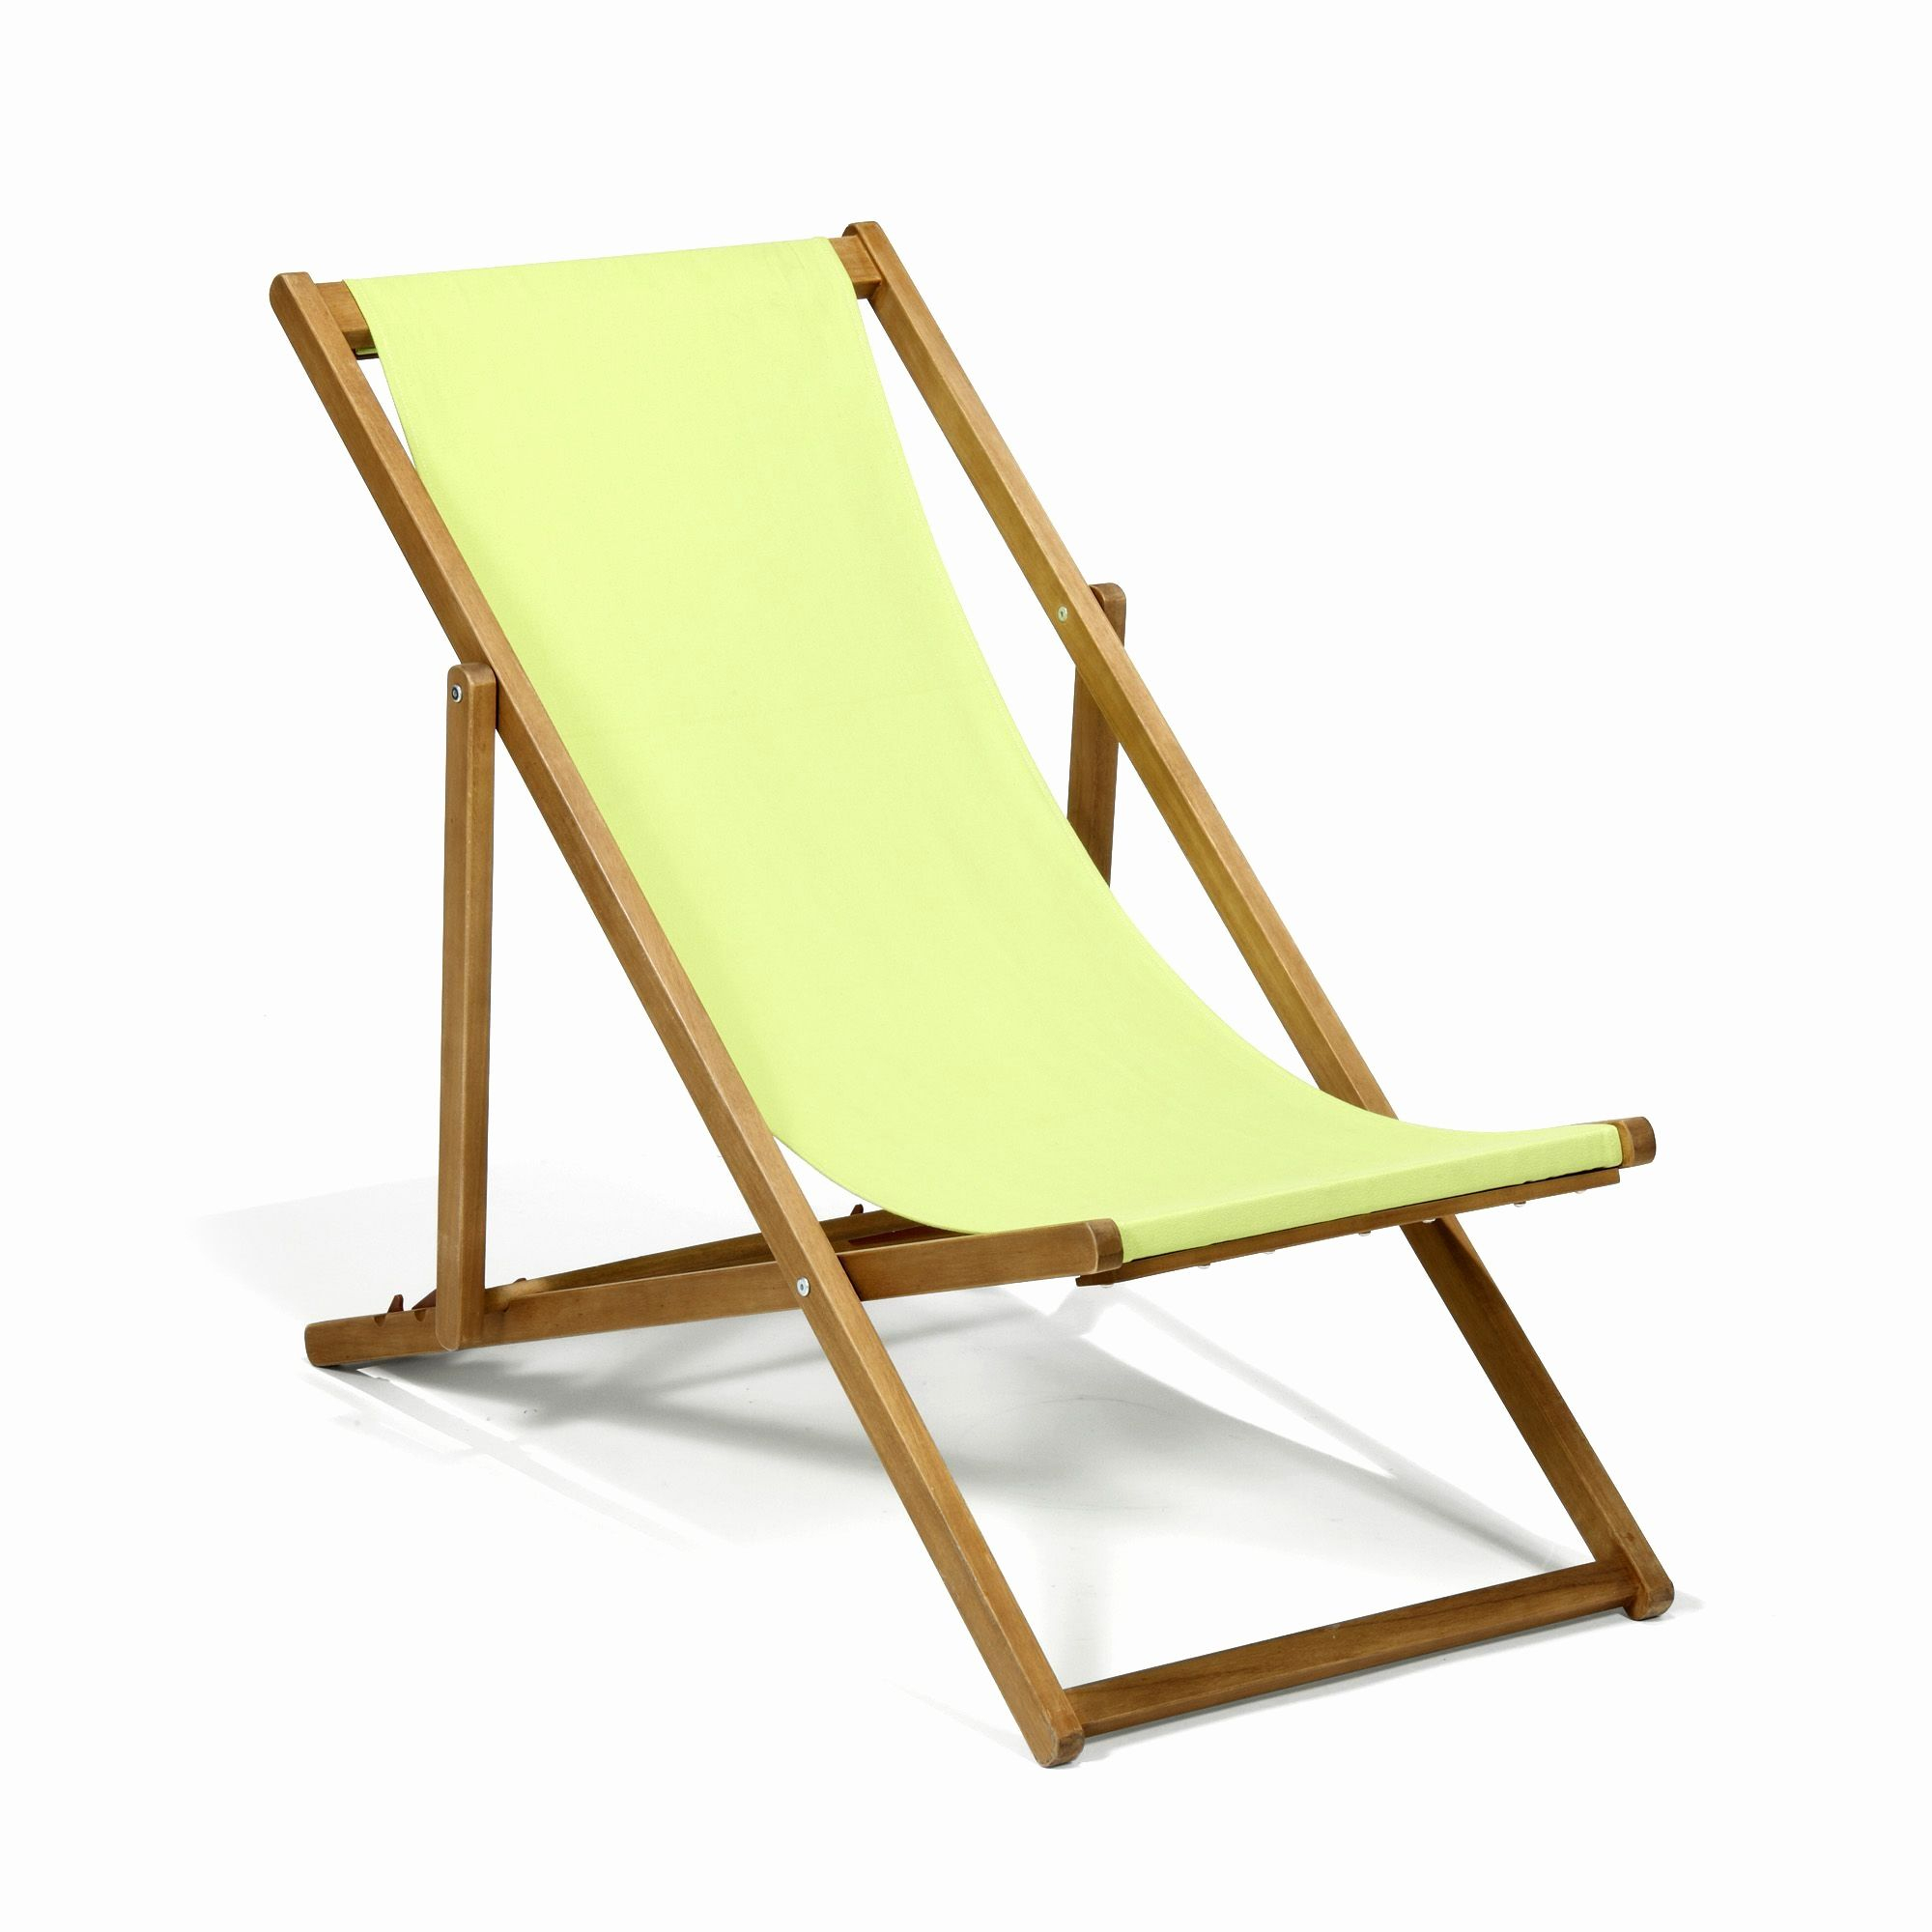 Transat Jardin Ikea | Outdoor Furniture, Furniture, Outdoor ... encequiconcerne Housse Chaise Longue Jardin